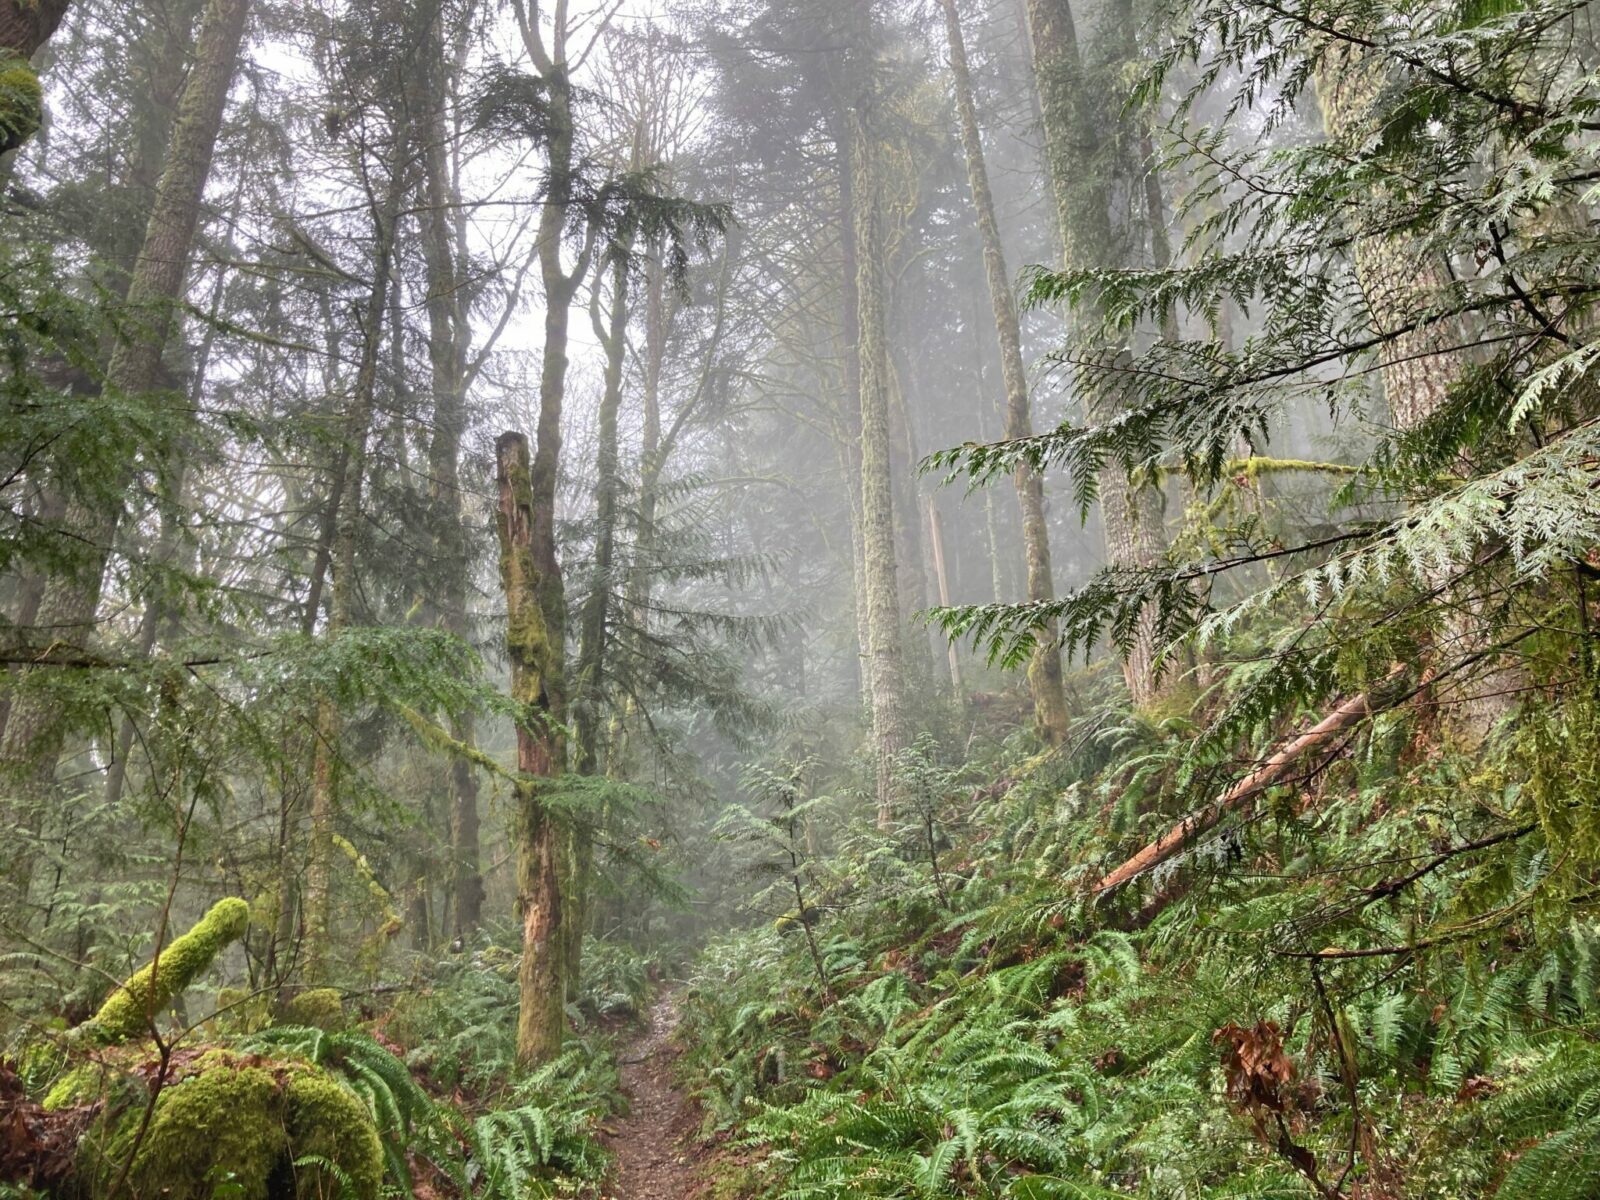 A narrow dirt trail heading uphill into the forest on Middle Tiger Mountain in Issaquah. There are ferns along the ground and it's a wet and foggy day.